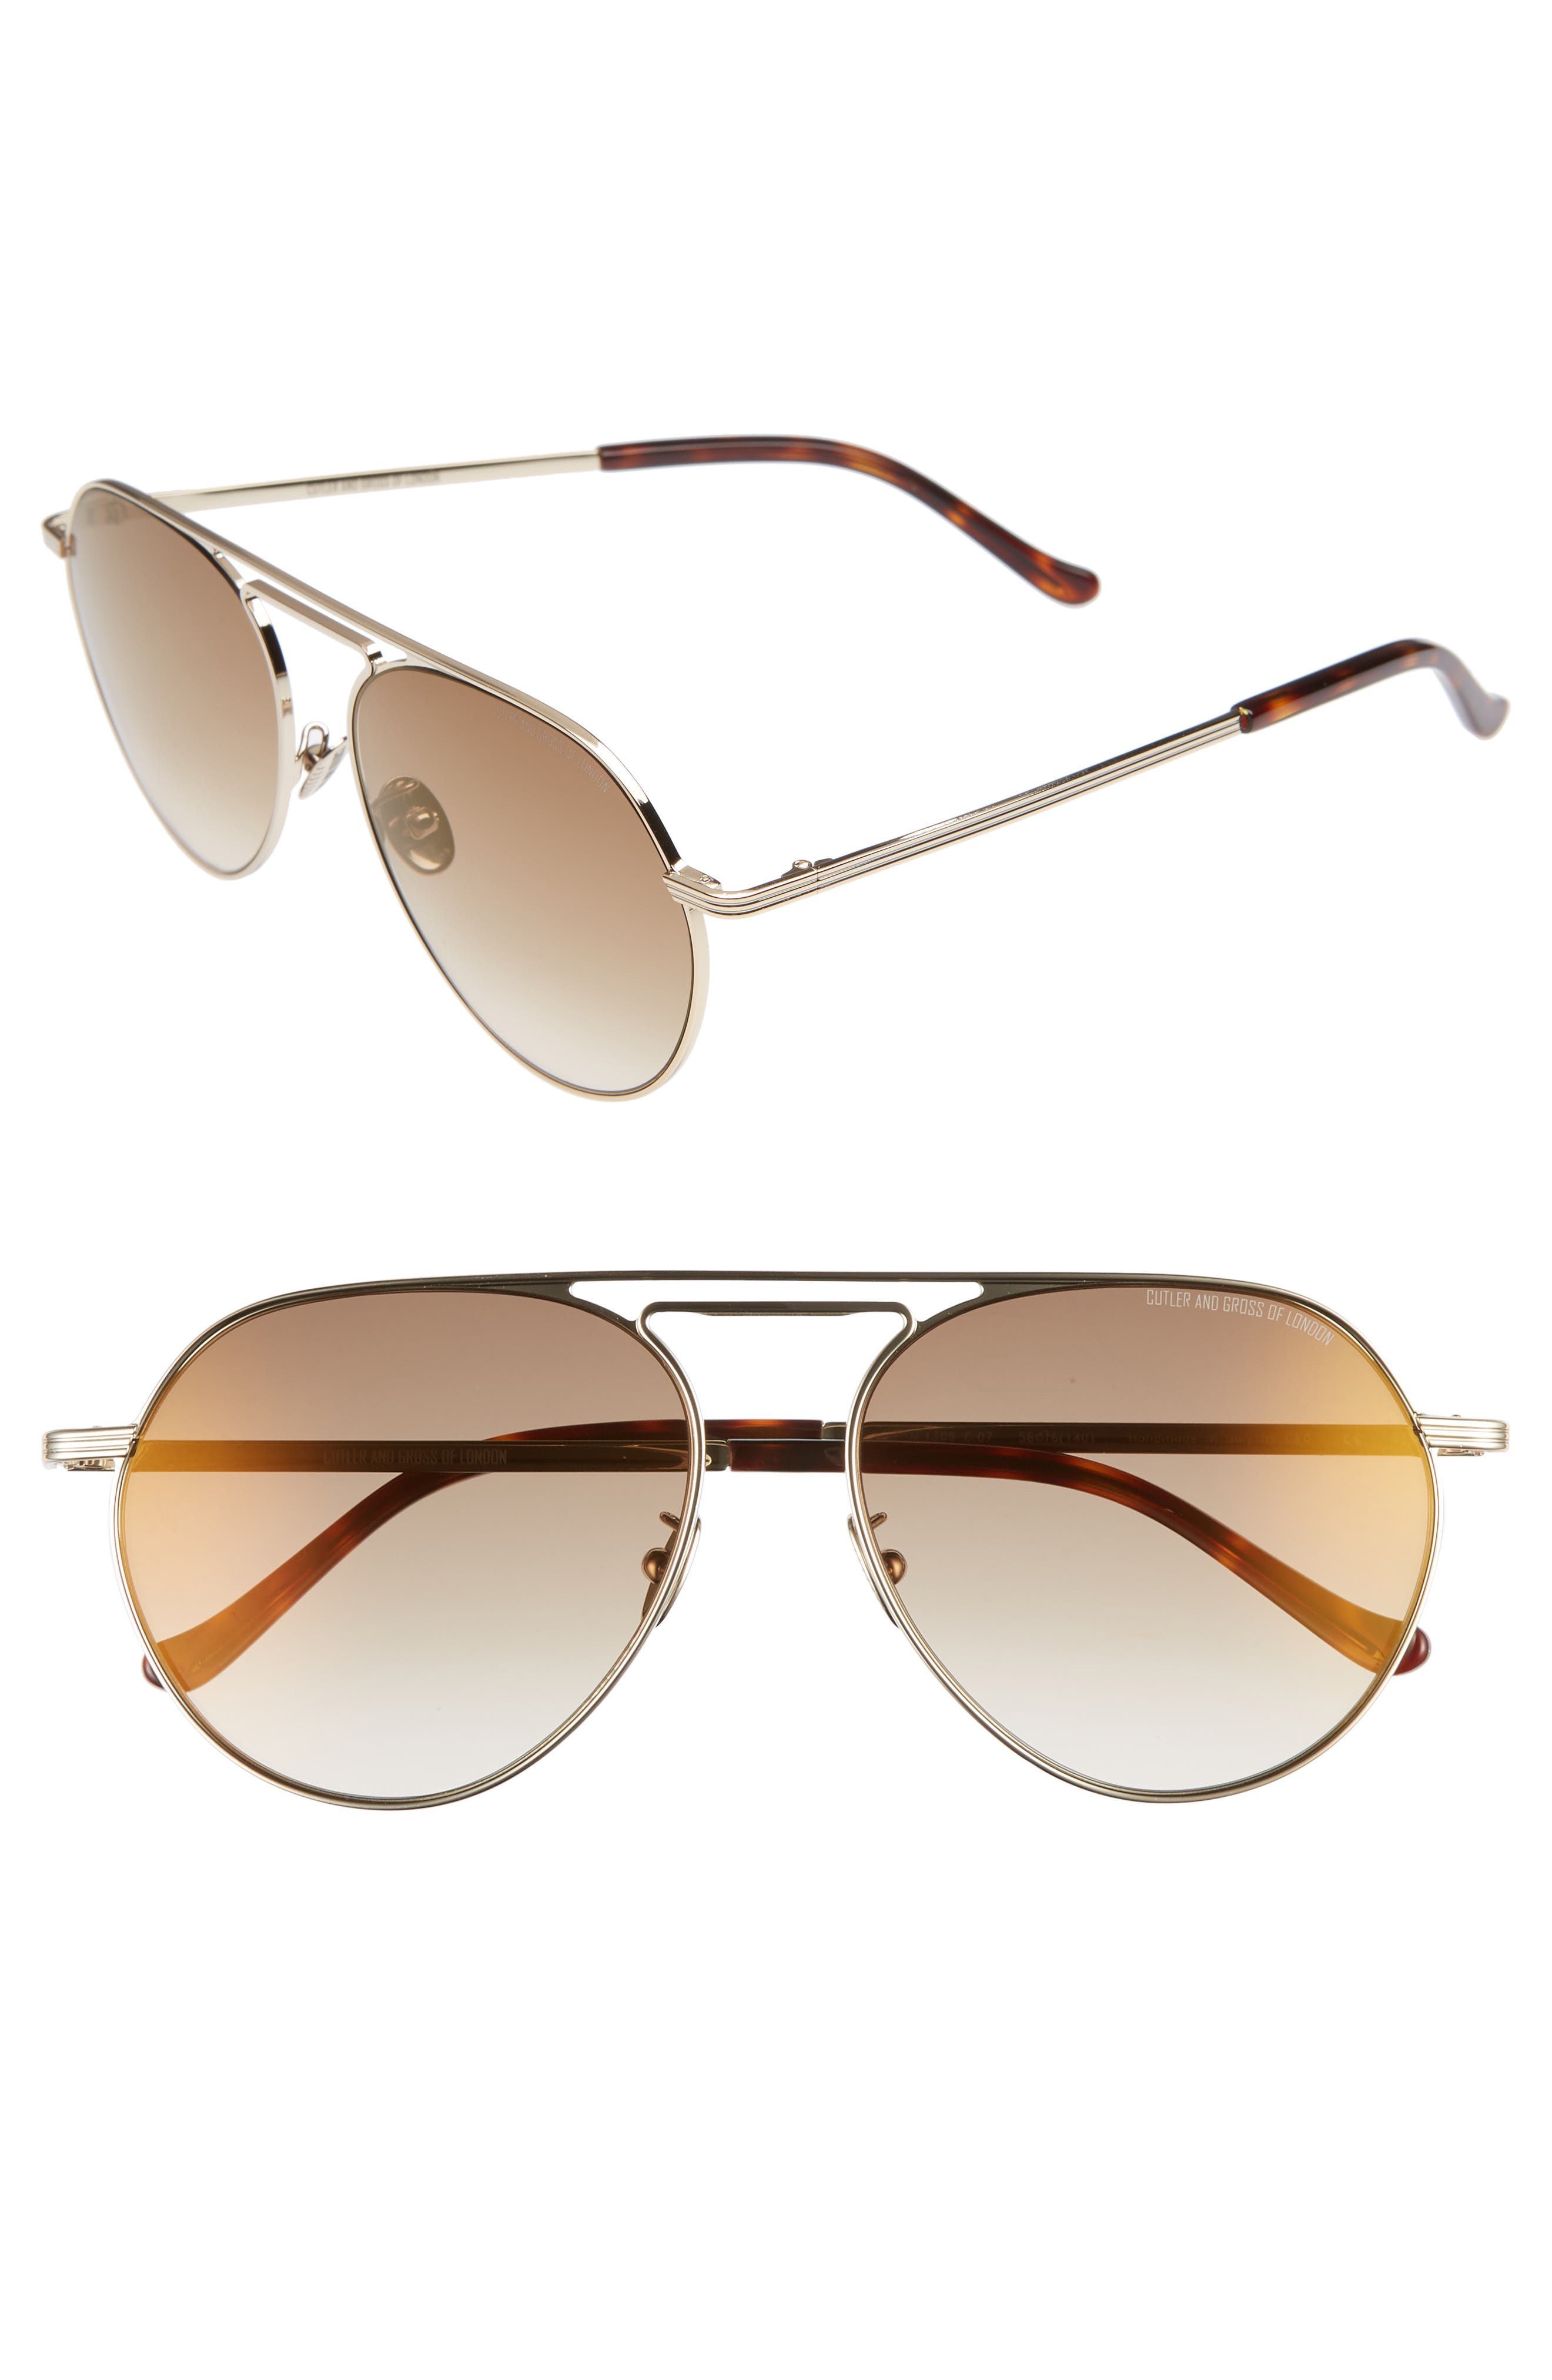 56mm Polarized Aviator Sunglasses,                             Main thumbnail 1, color,                             BROWN GOLD/ BROWN